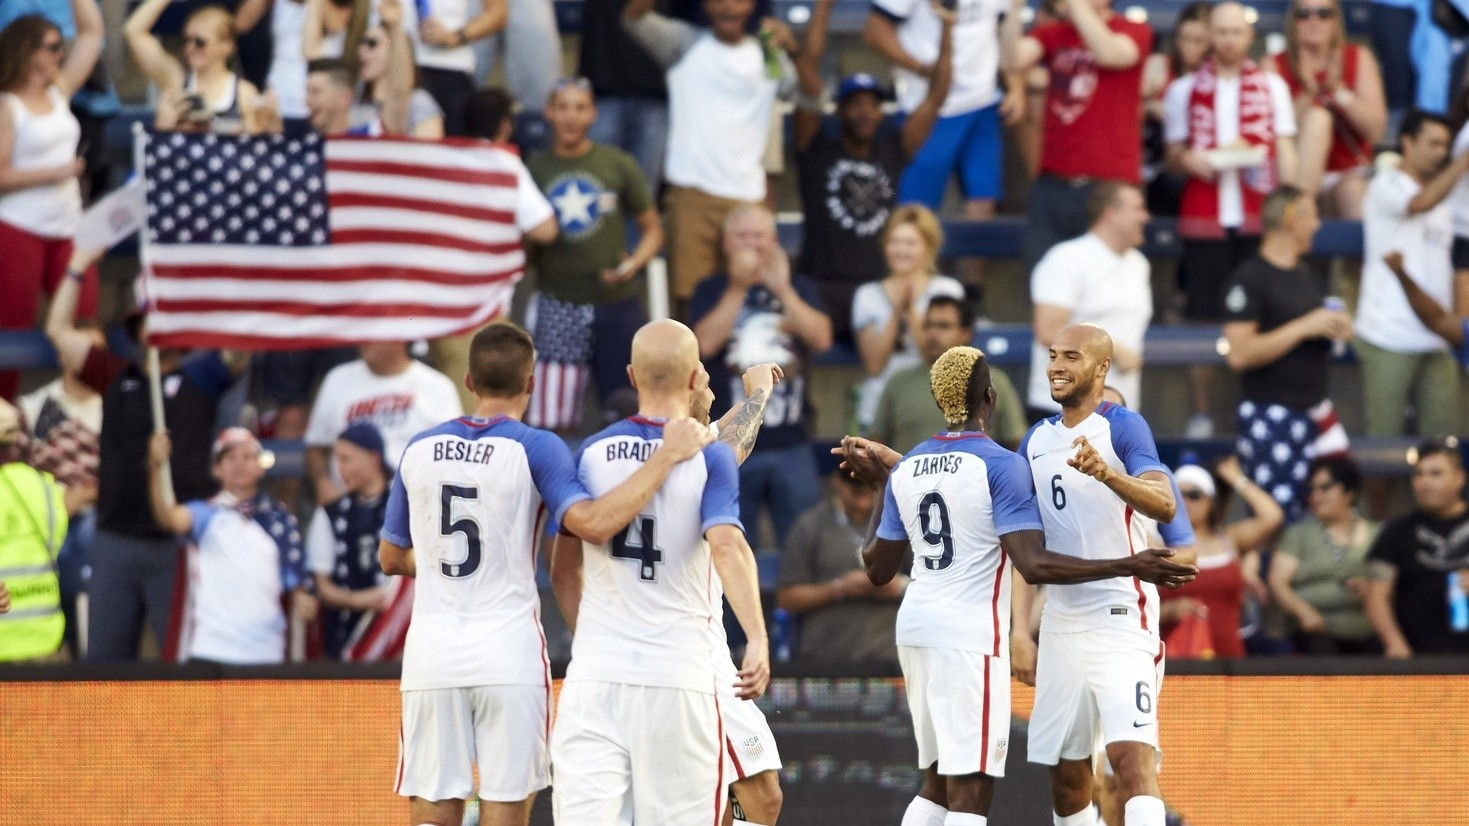 Should MLS Be Primarily Marketing USMNT Players? Chips Soccer Podcast Episode 12